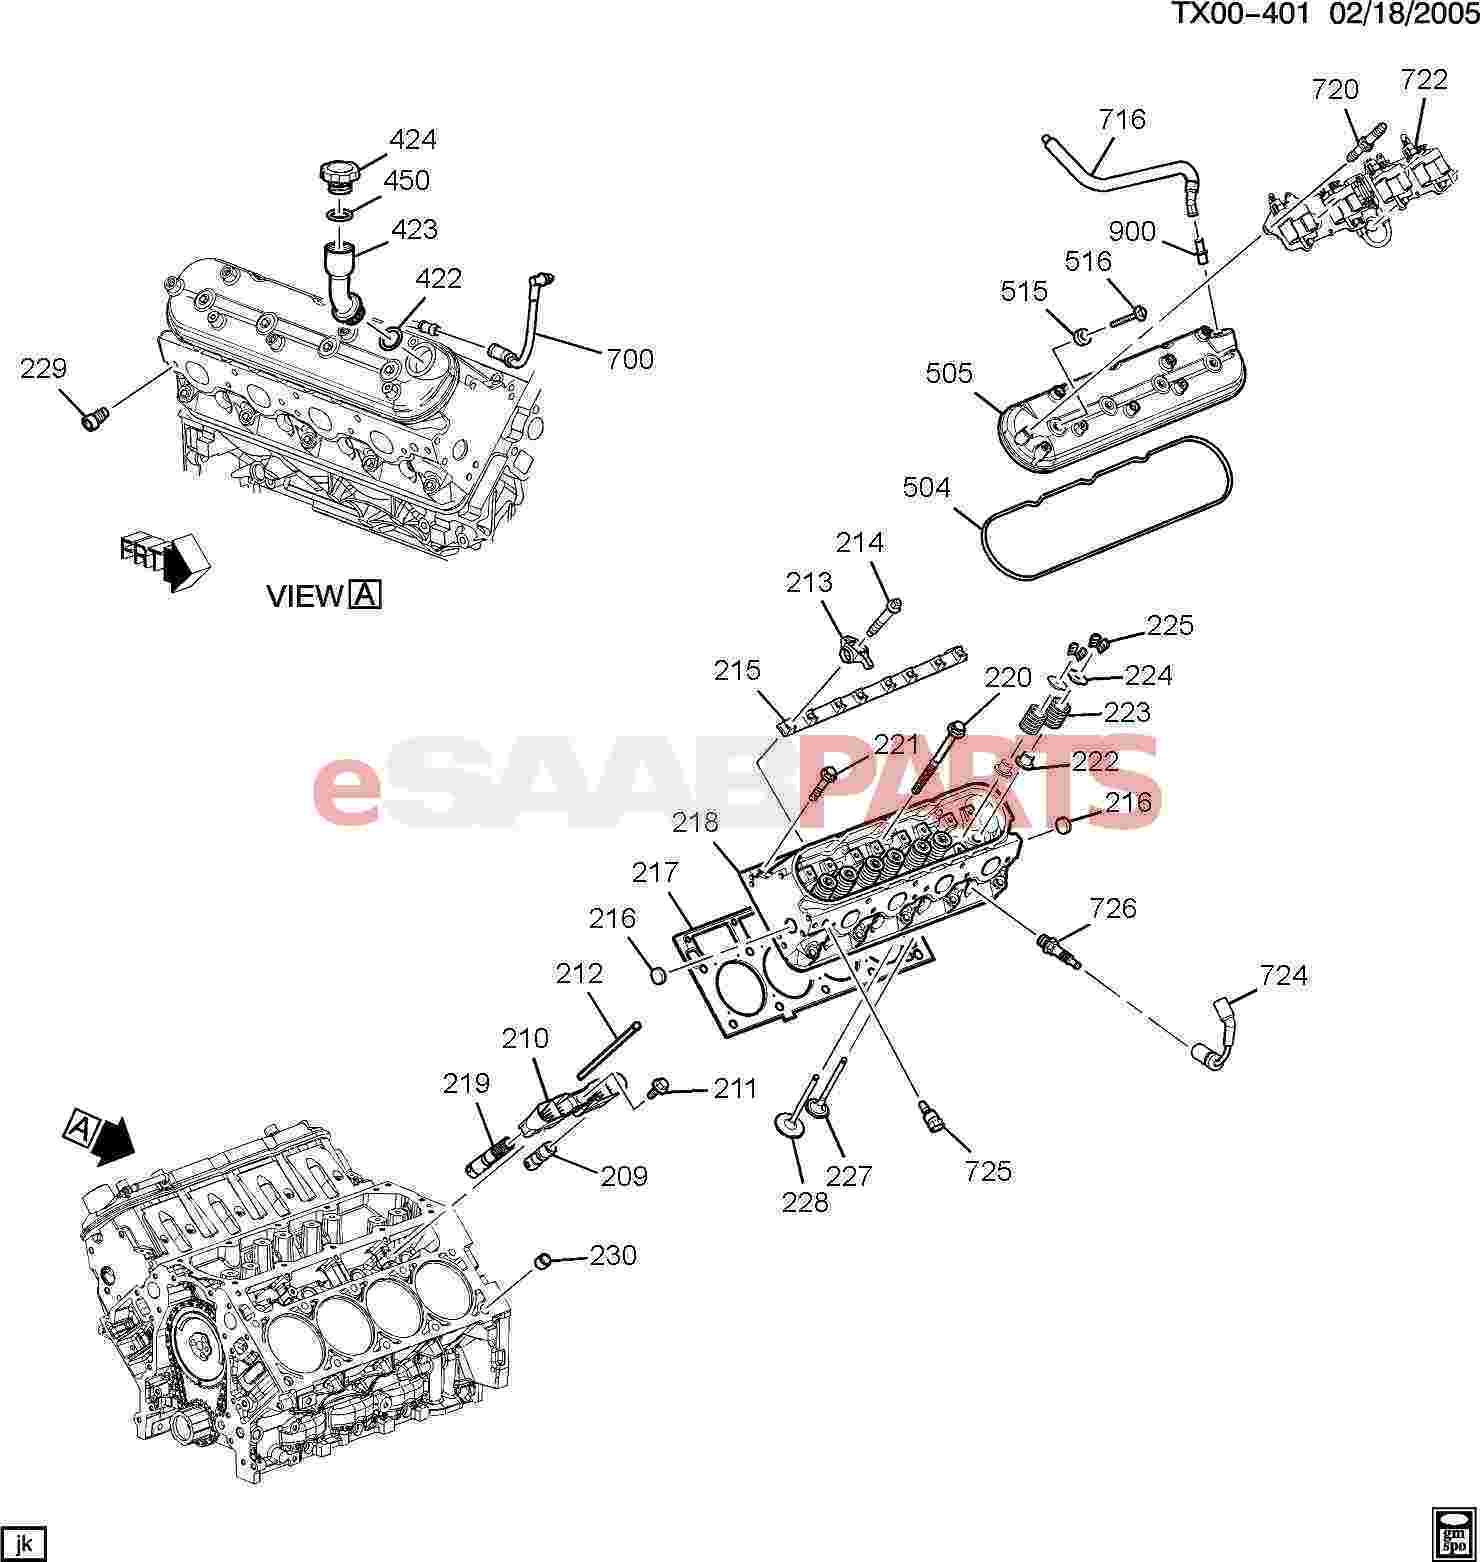 Saab Tube Positive Crankcase Ventilation